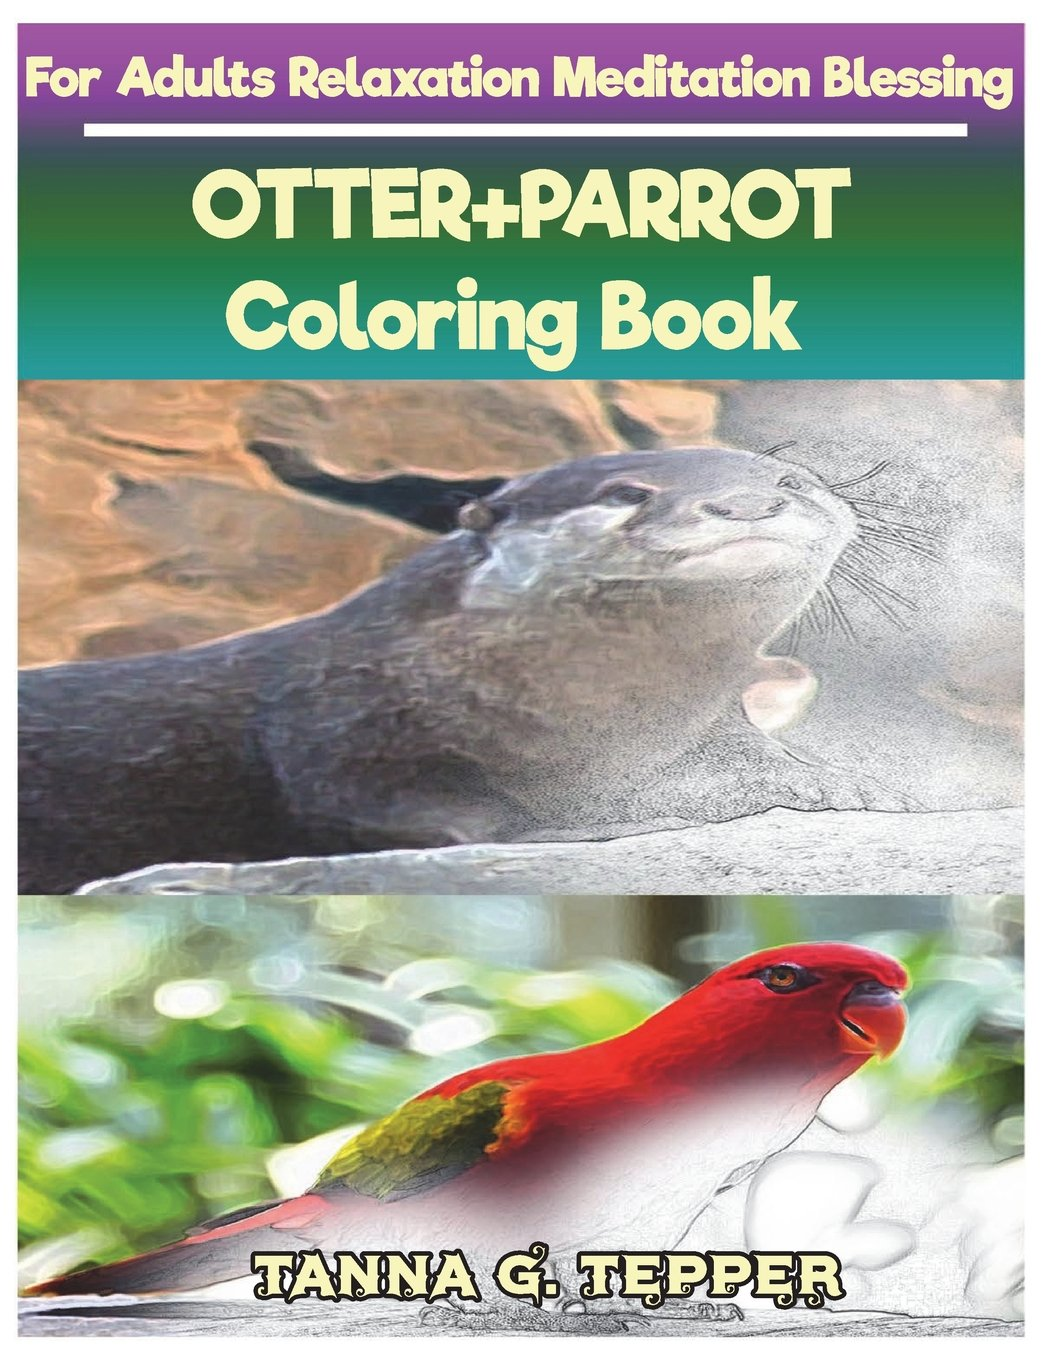 Download OTTER+PARROT Coloring book for Adults Relaxation Meditation Blessing: Sketch coloring book Grayscale Pictures pdf epub